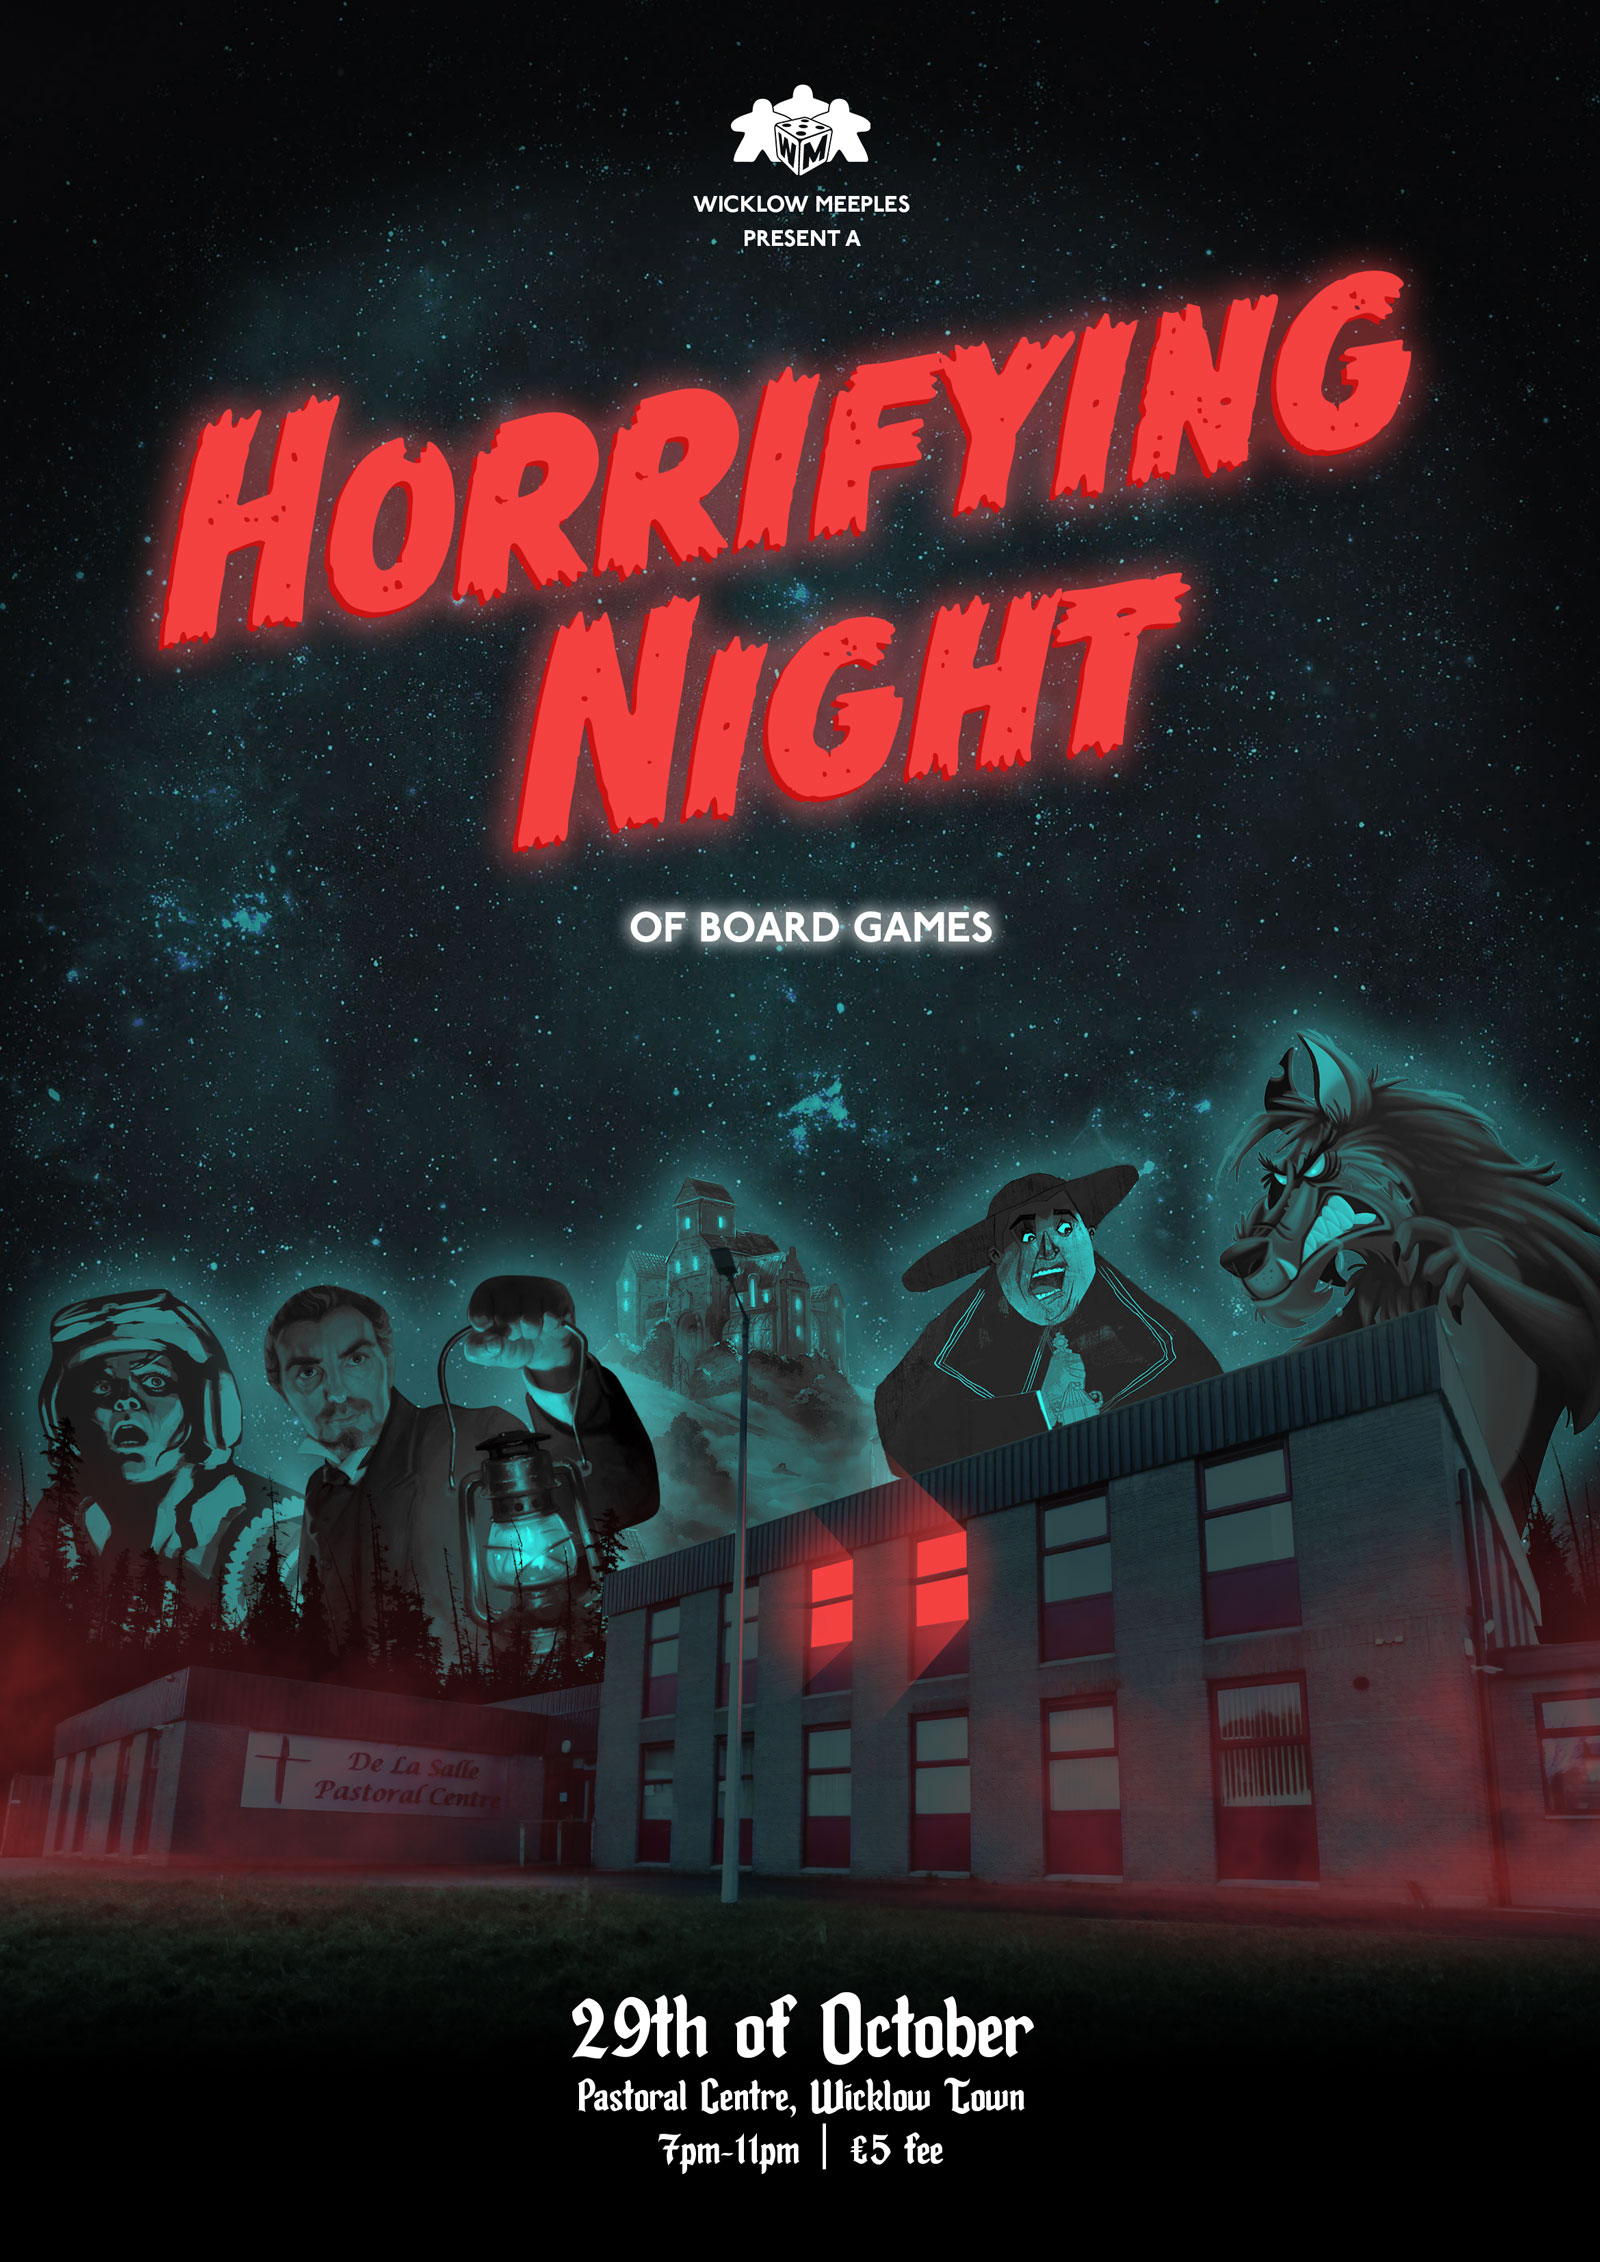 Horrifying Night promo poster